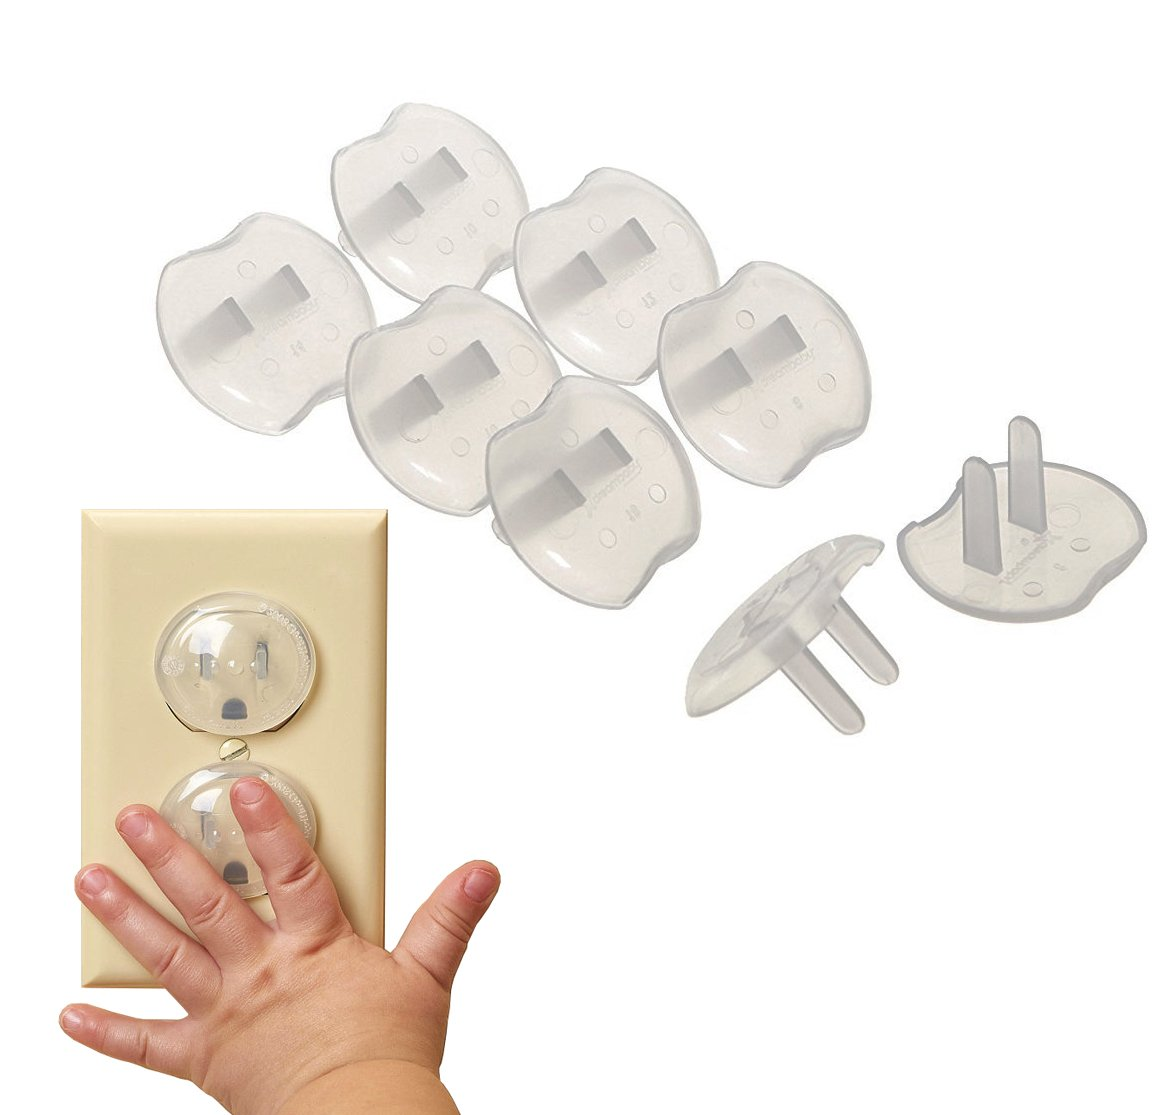 Plug Covers Outlet Protectors Set of 8